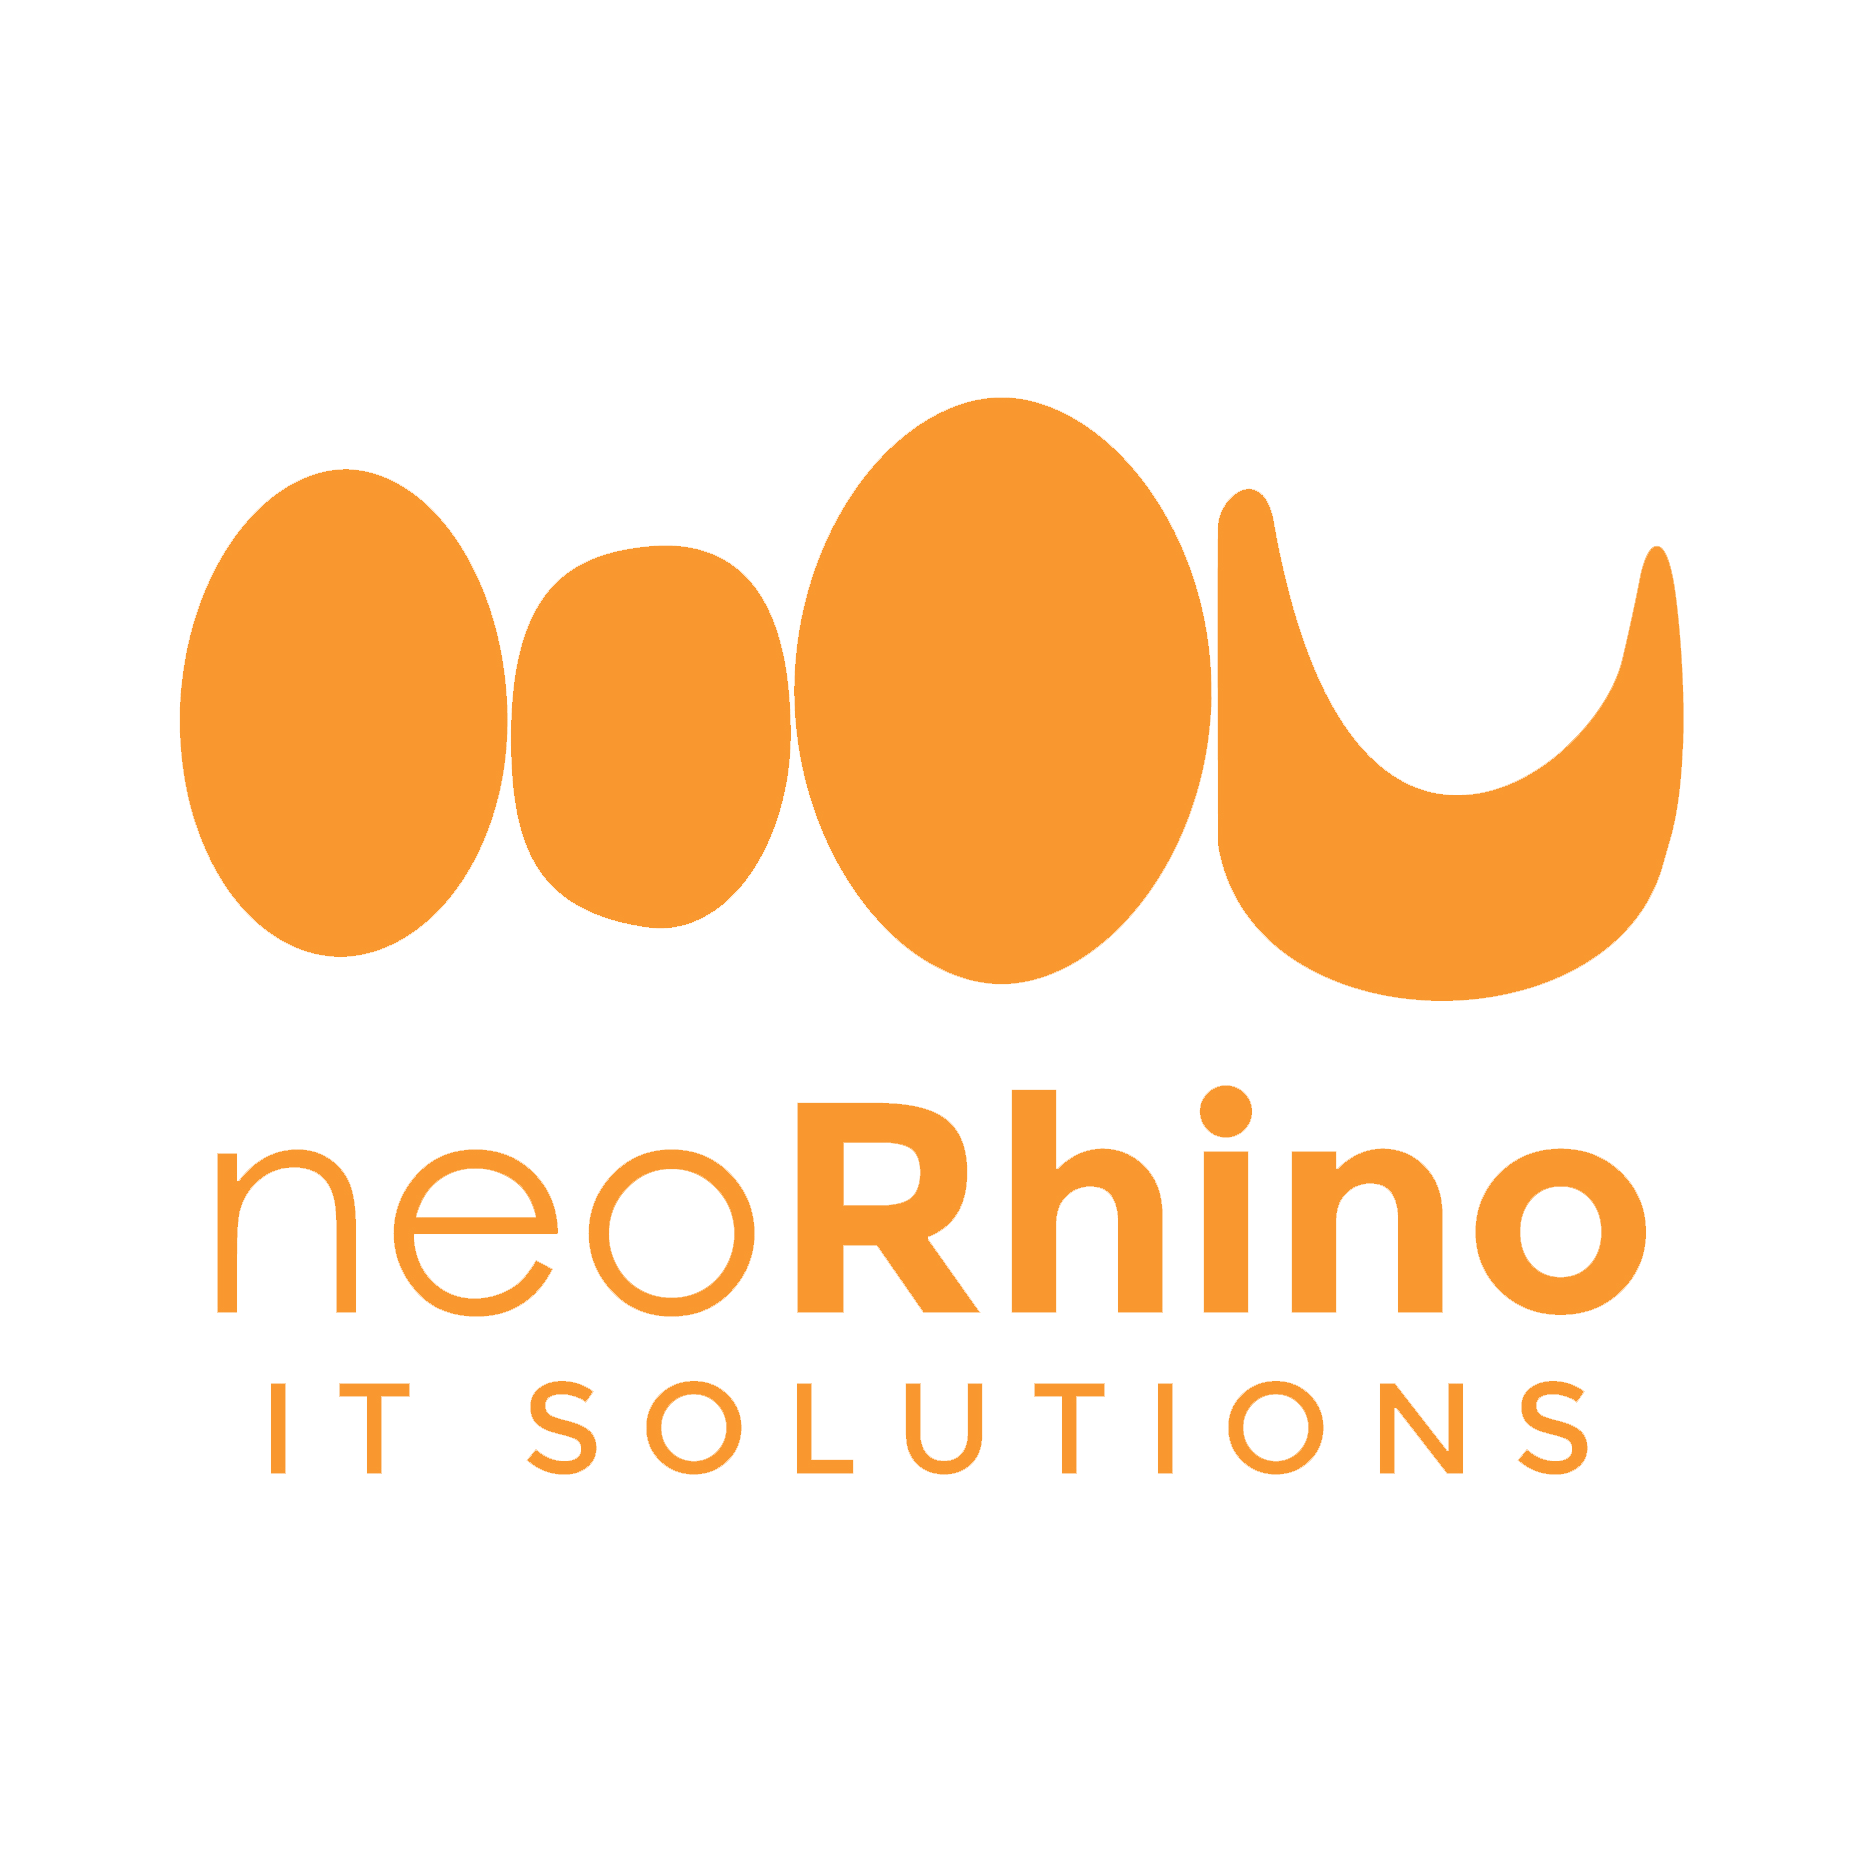 neoRhino IT Solutions